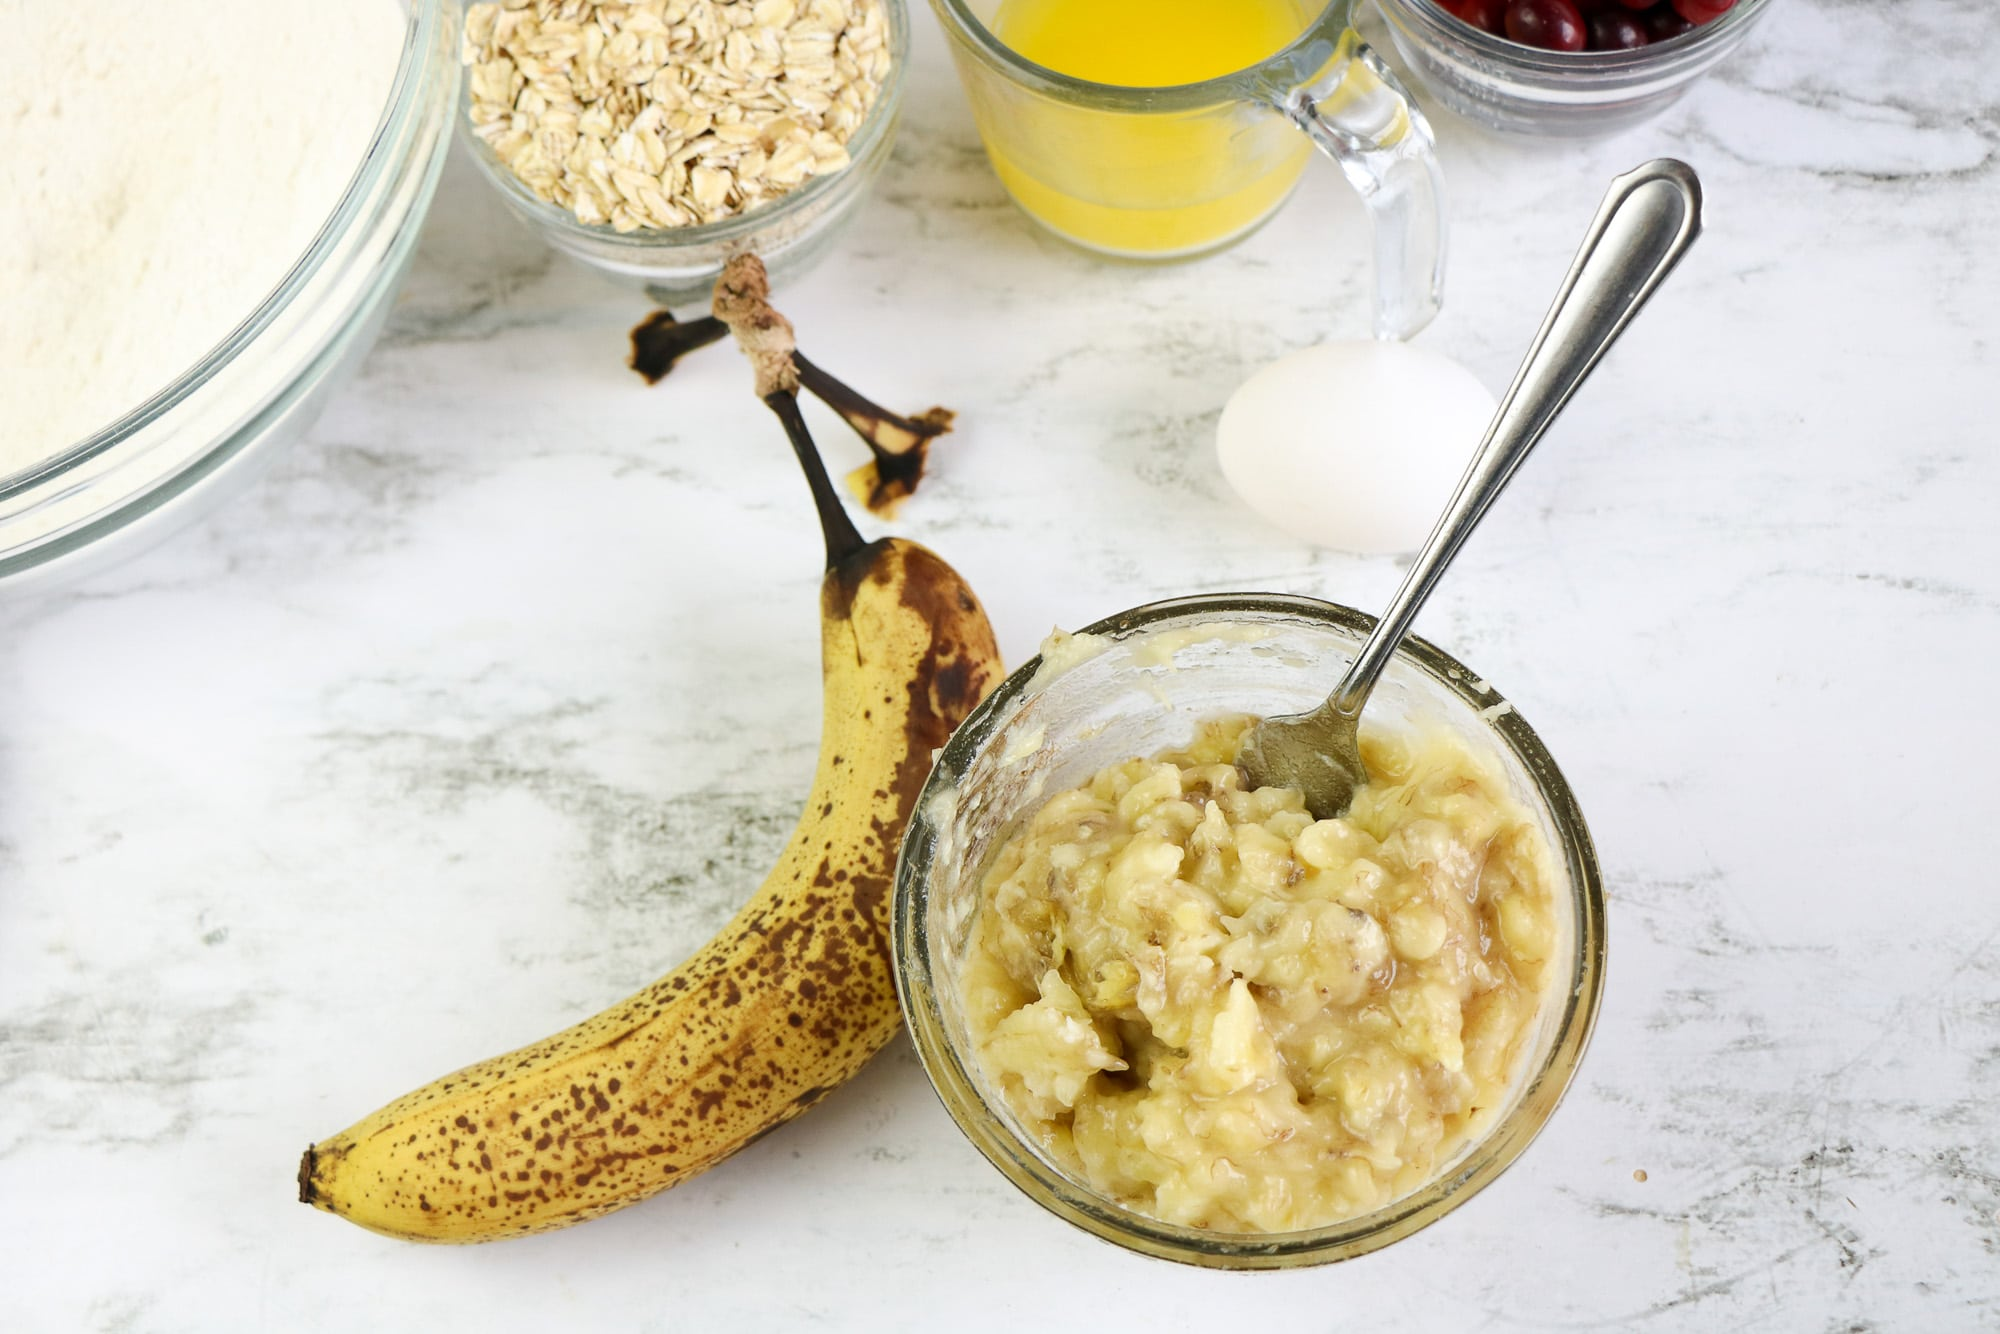 mashed bananas in glass bowl